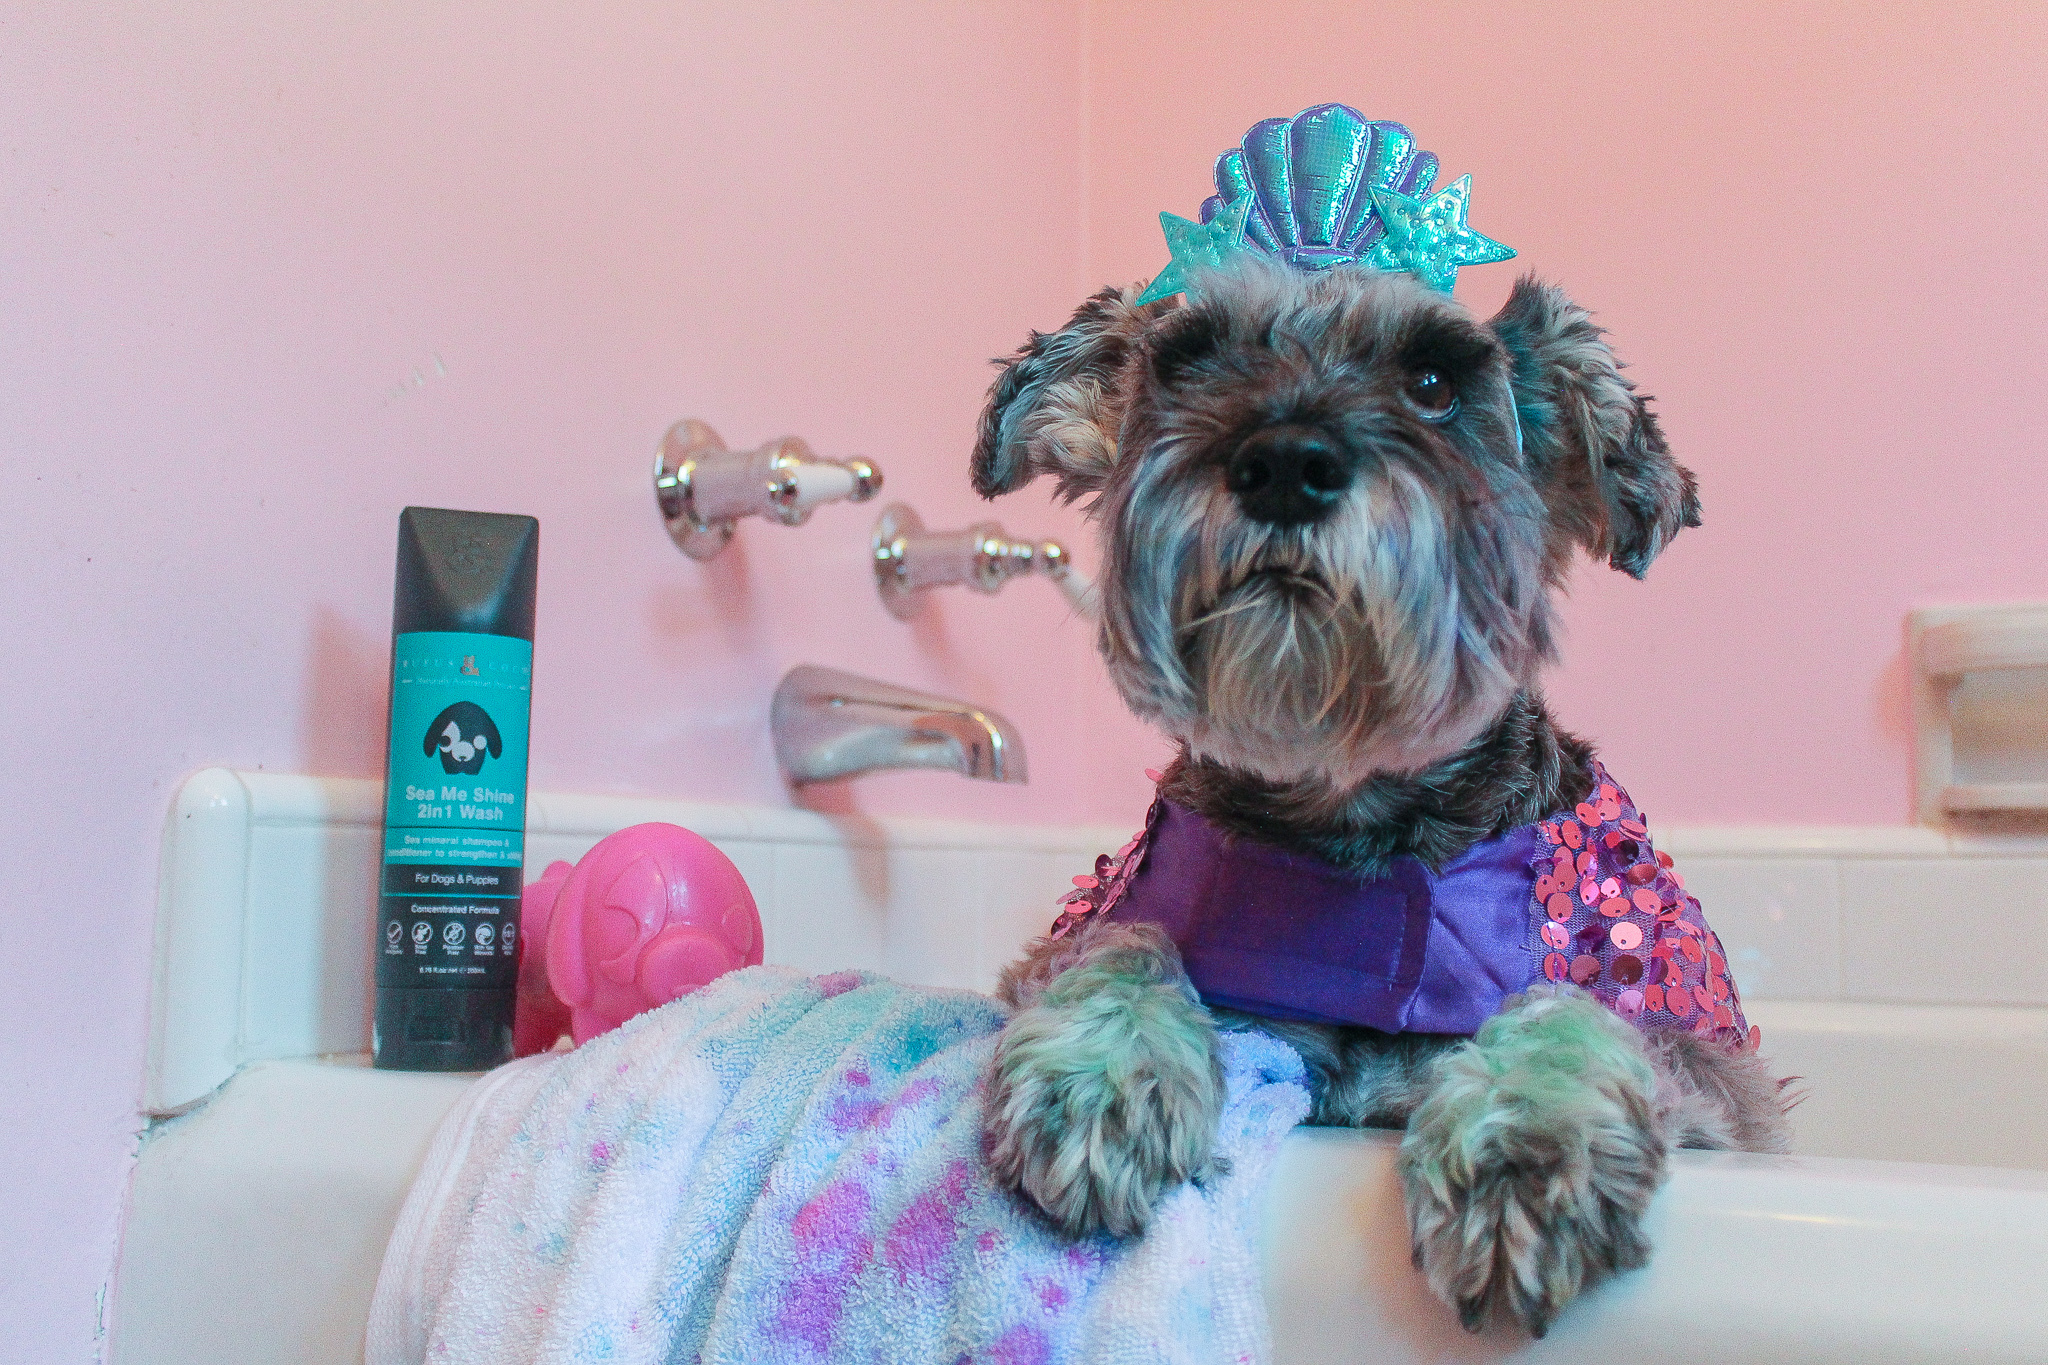 this halloween, don't let a cute pet costume trick you into harming